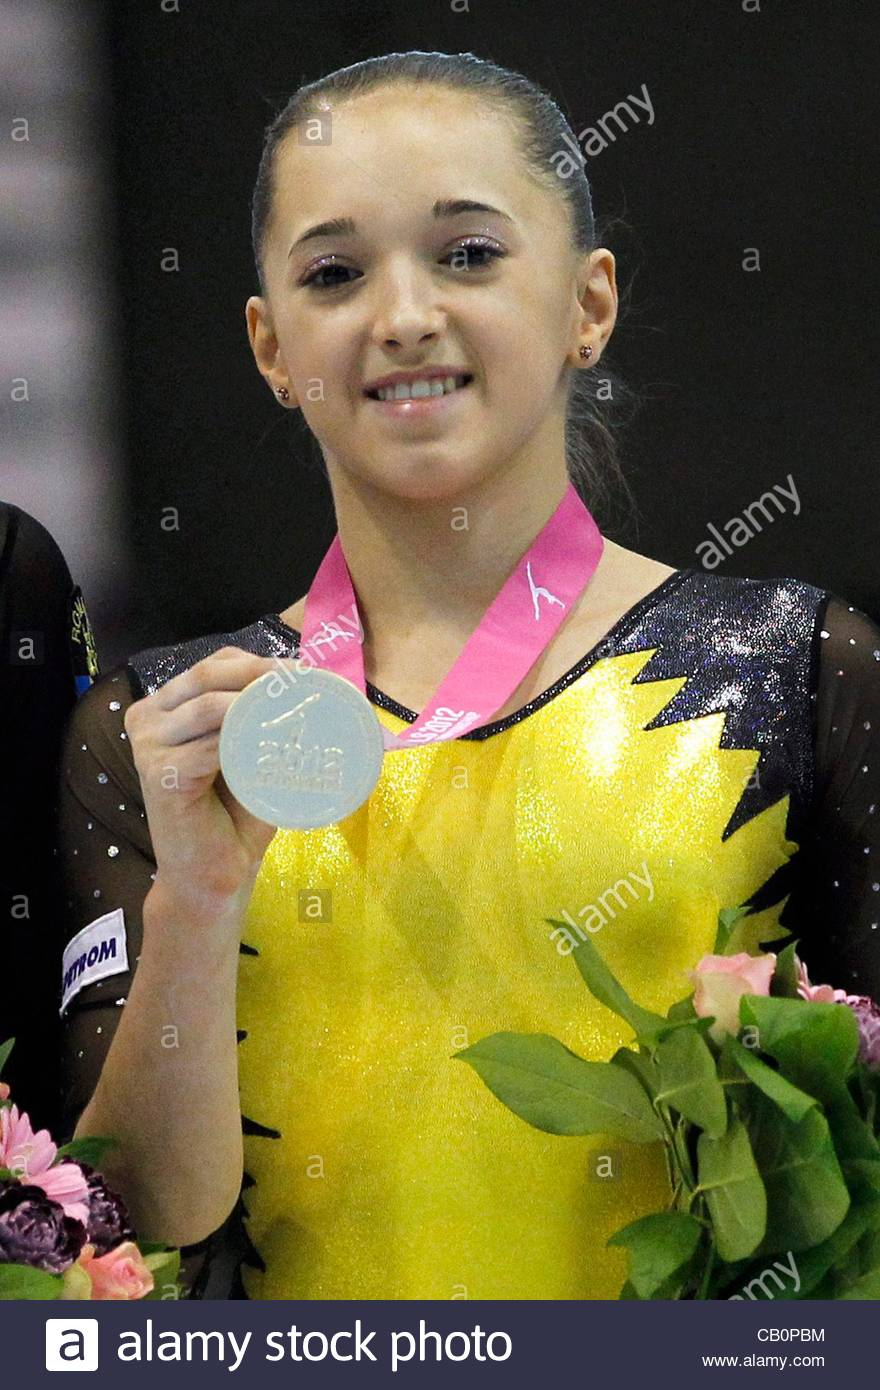 Stock Photo - epa03217499 Gold medalist Romanian Larisa Andreea Iordache stands on the podium after winning the seniors floor apparatus finals at the Women ... - epa03217499-gold-medalist-romanian-larisa-andreea-iordache-stands-CB0PBM